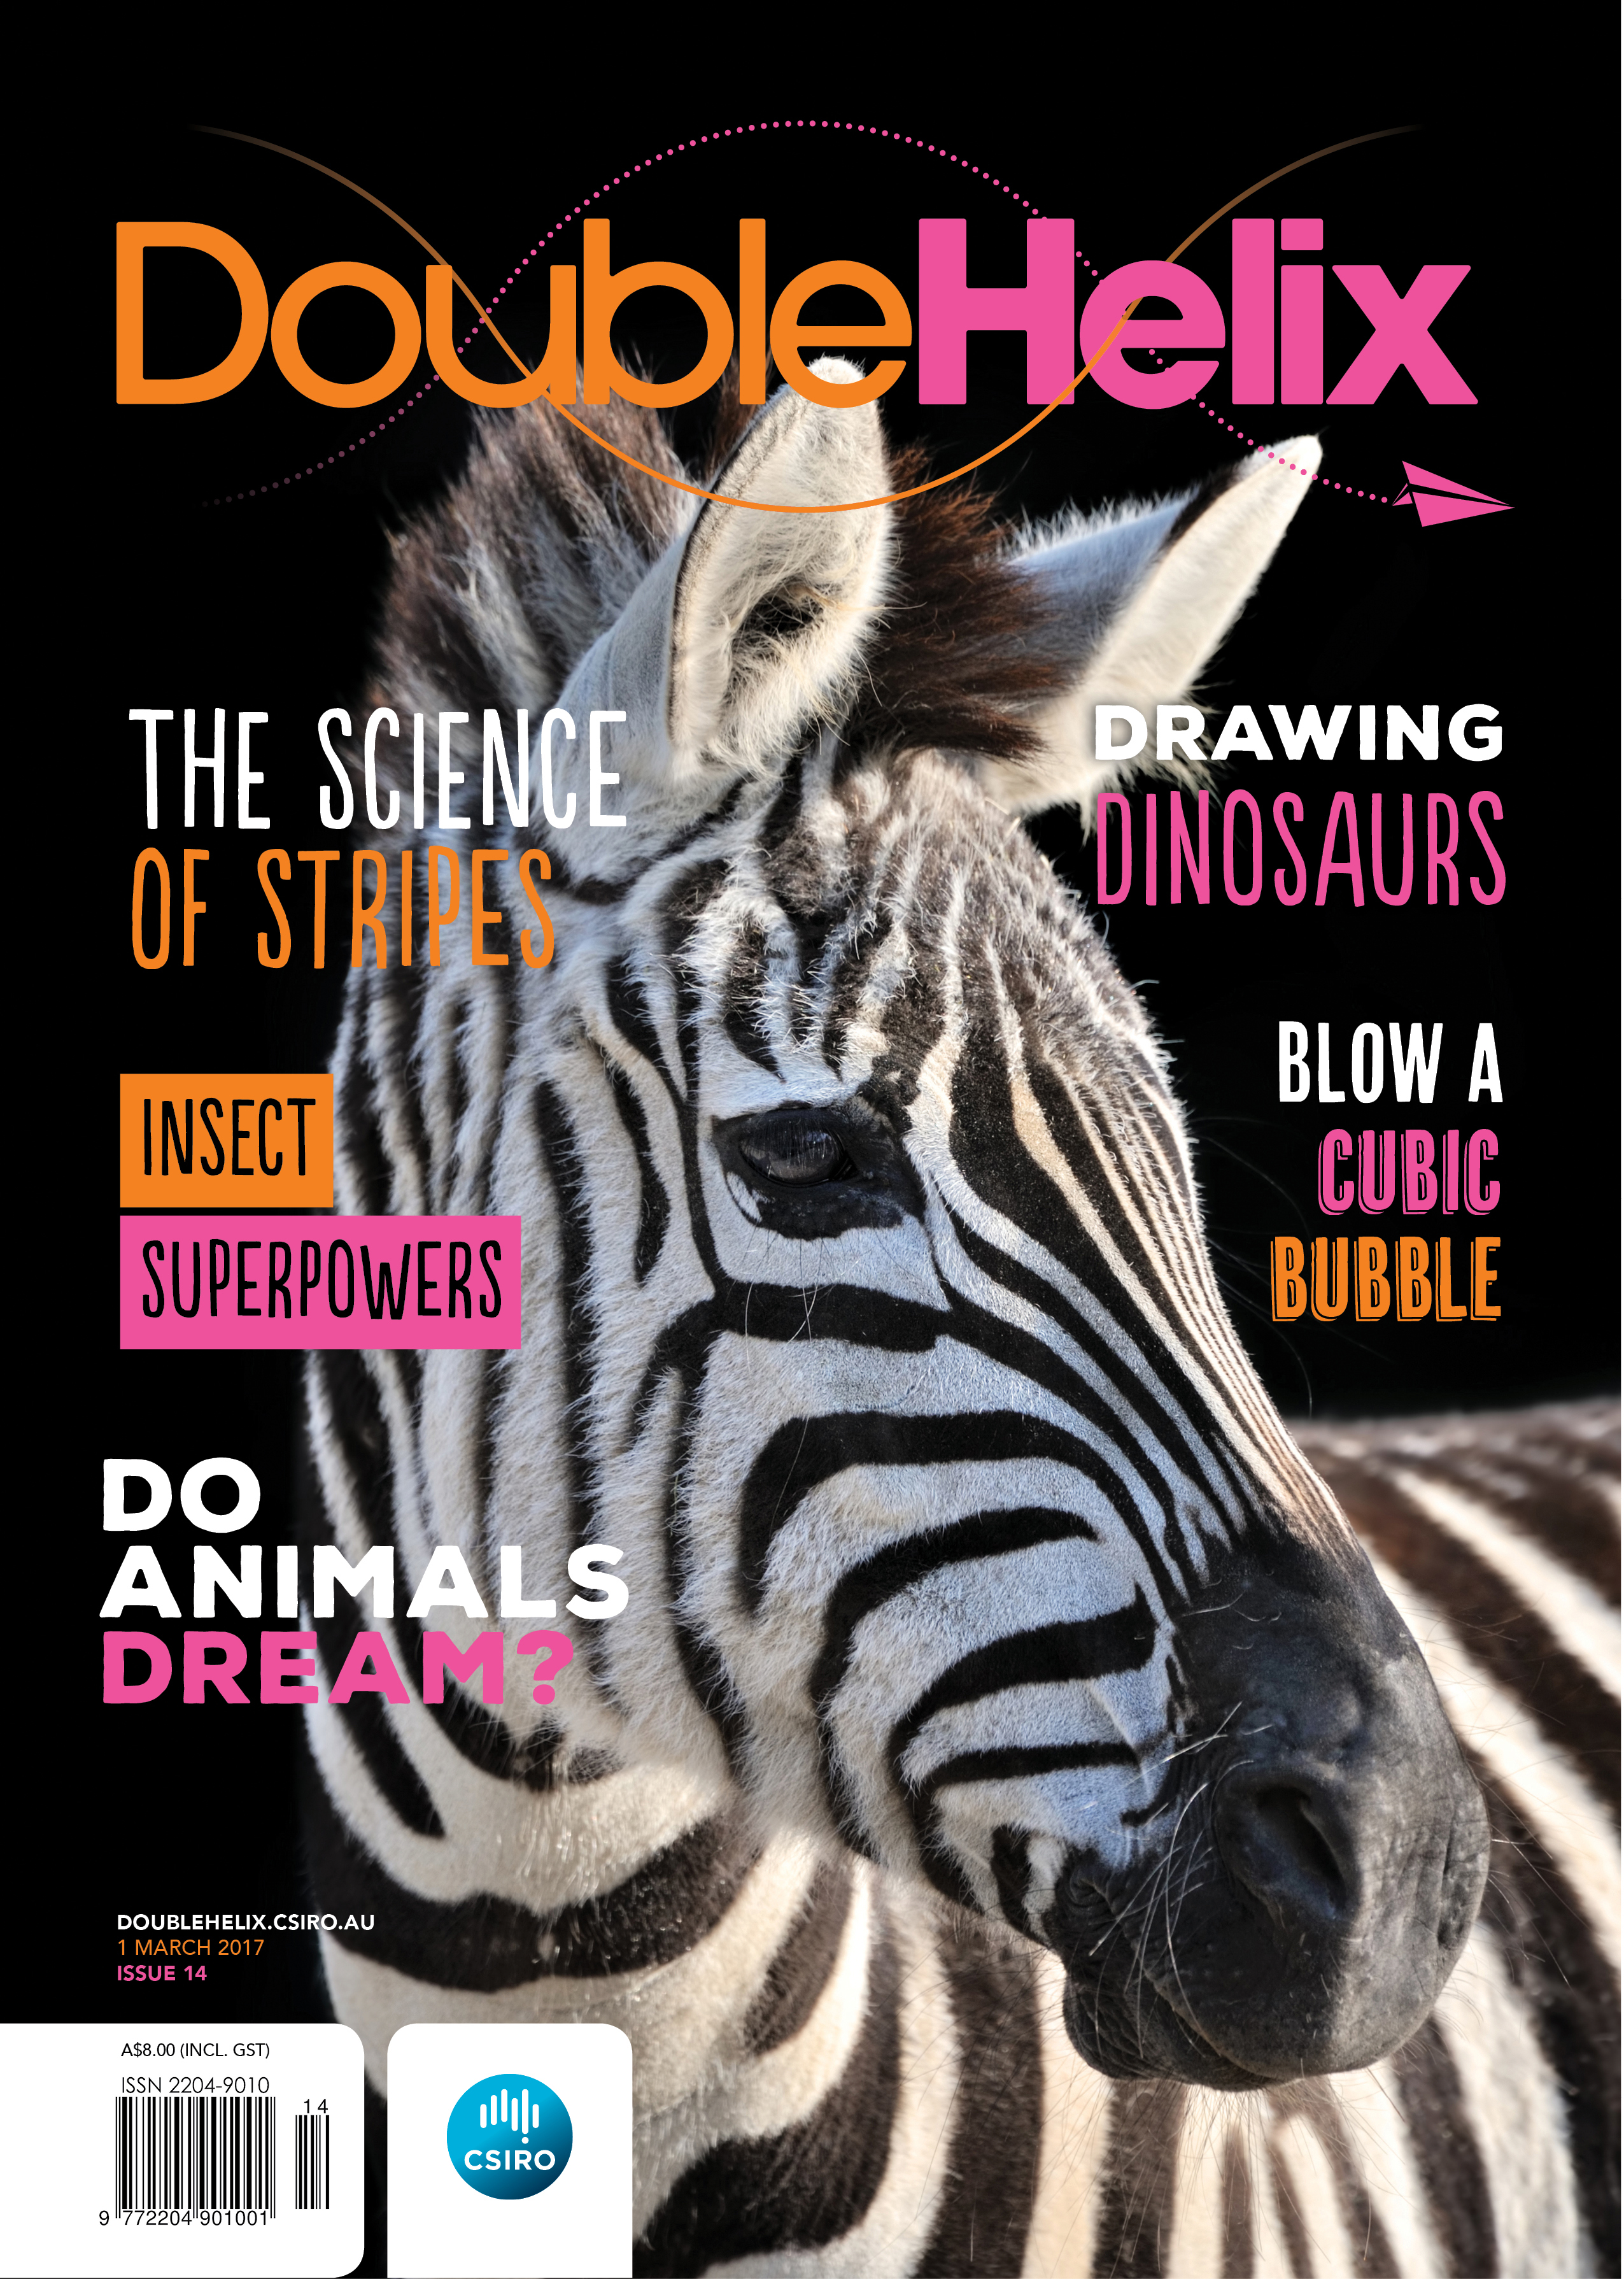 Magazine cover with photograph of zebra head